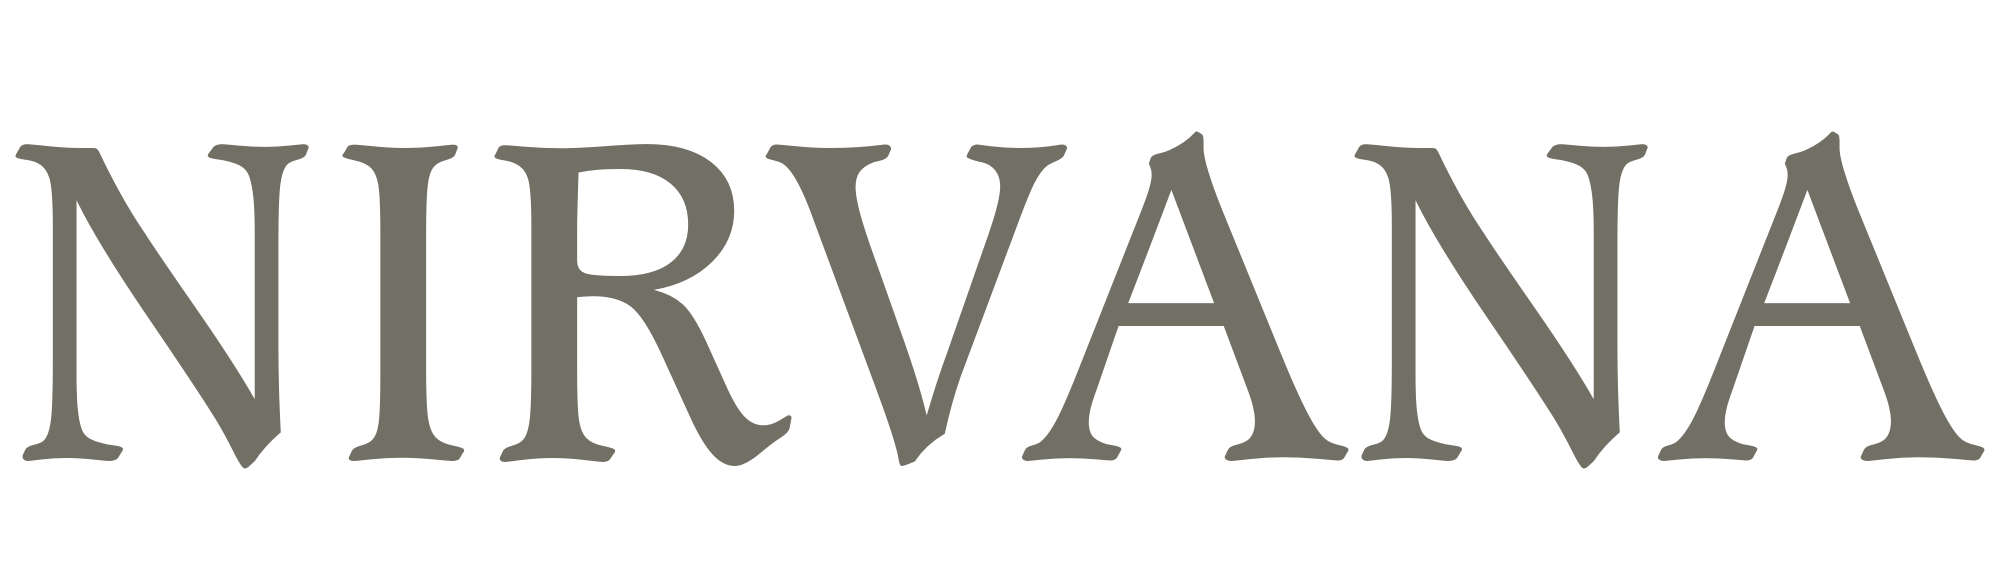 Nirvana transparent meaning. Name s of